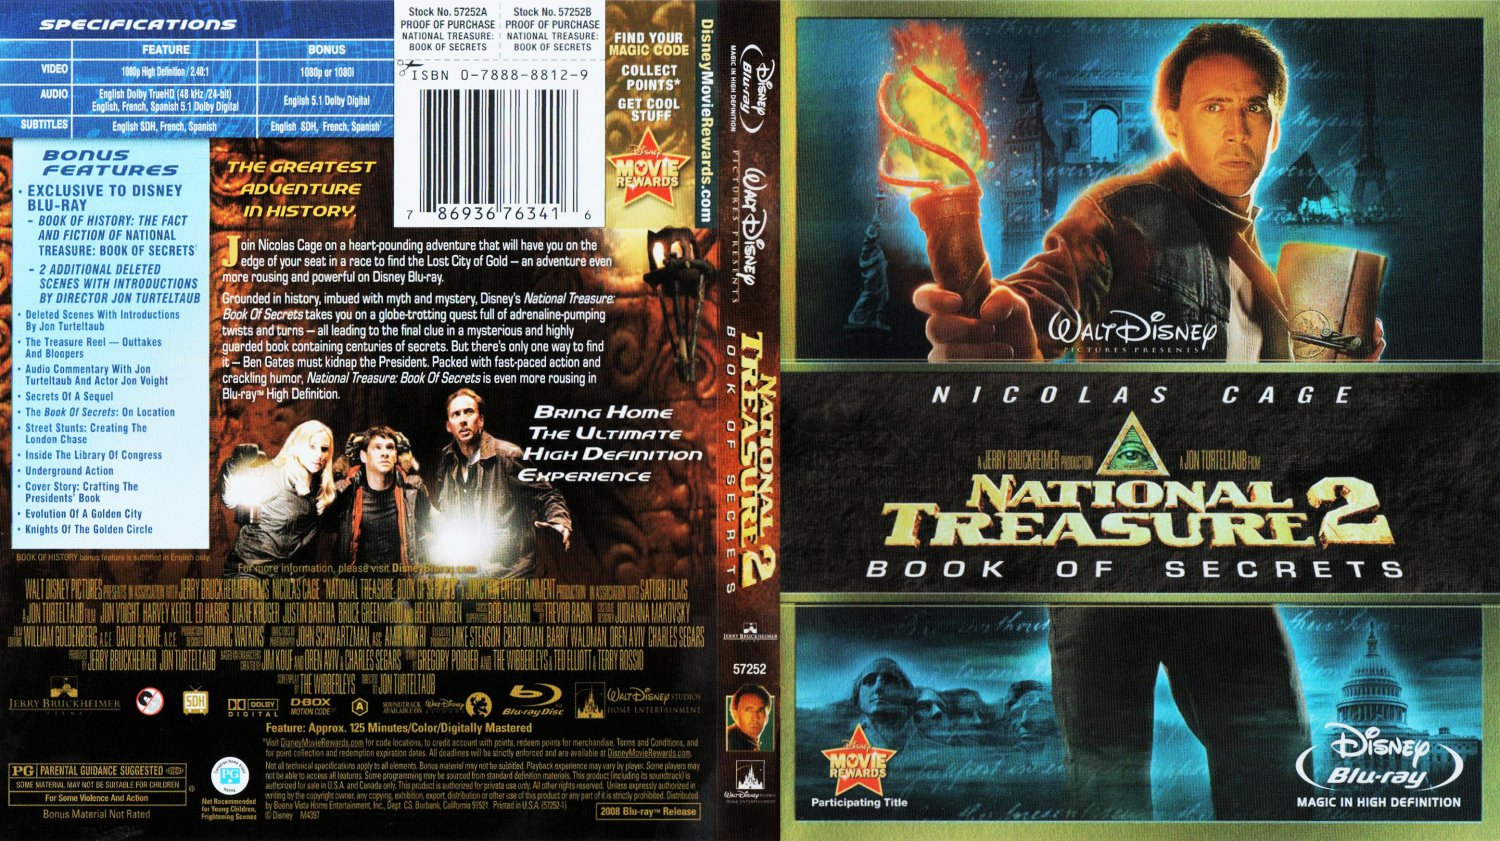 National Treasure 2 Book Of Secrets - Movie Blu-Ray ...